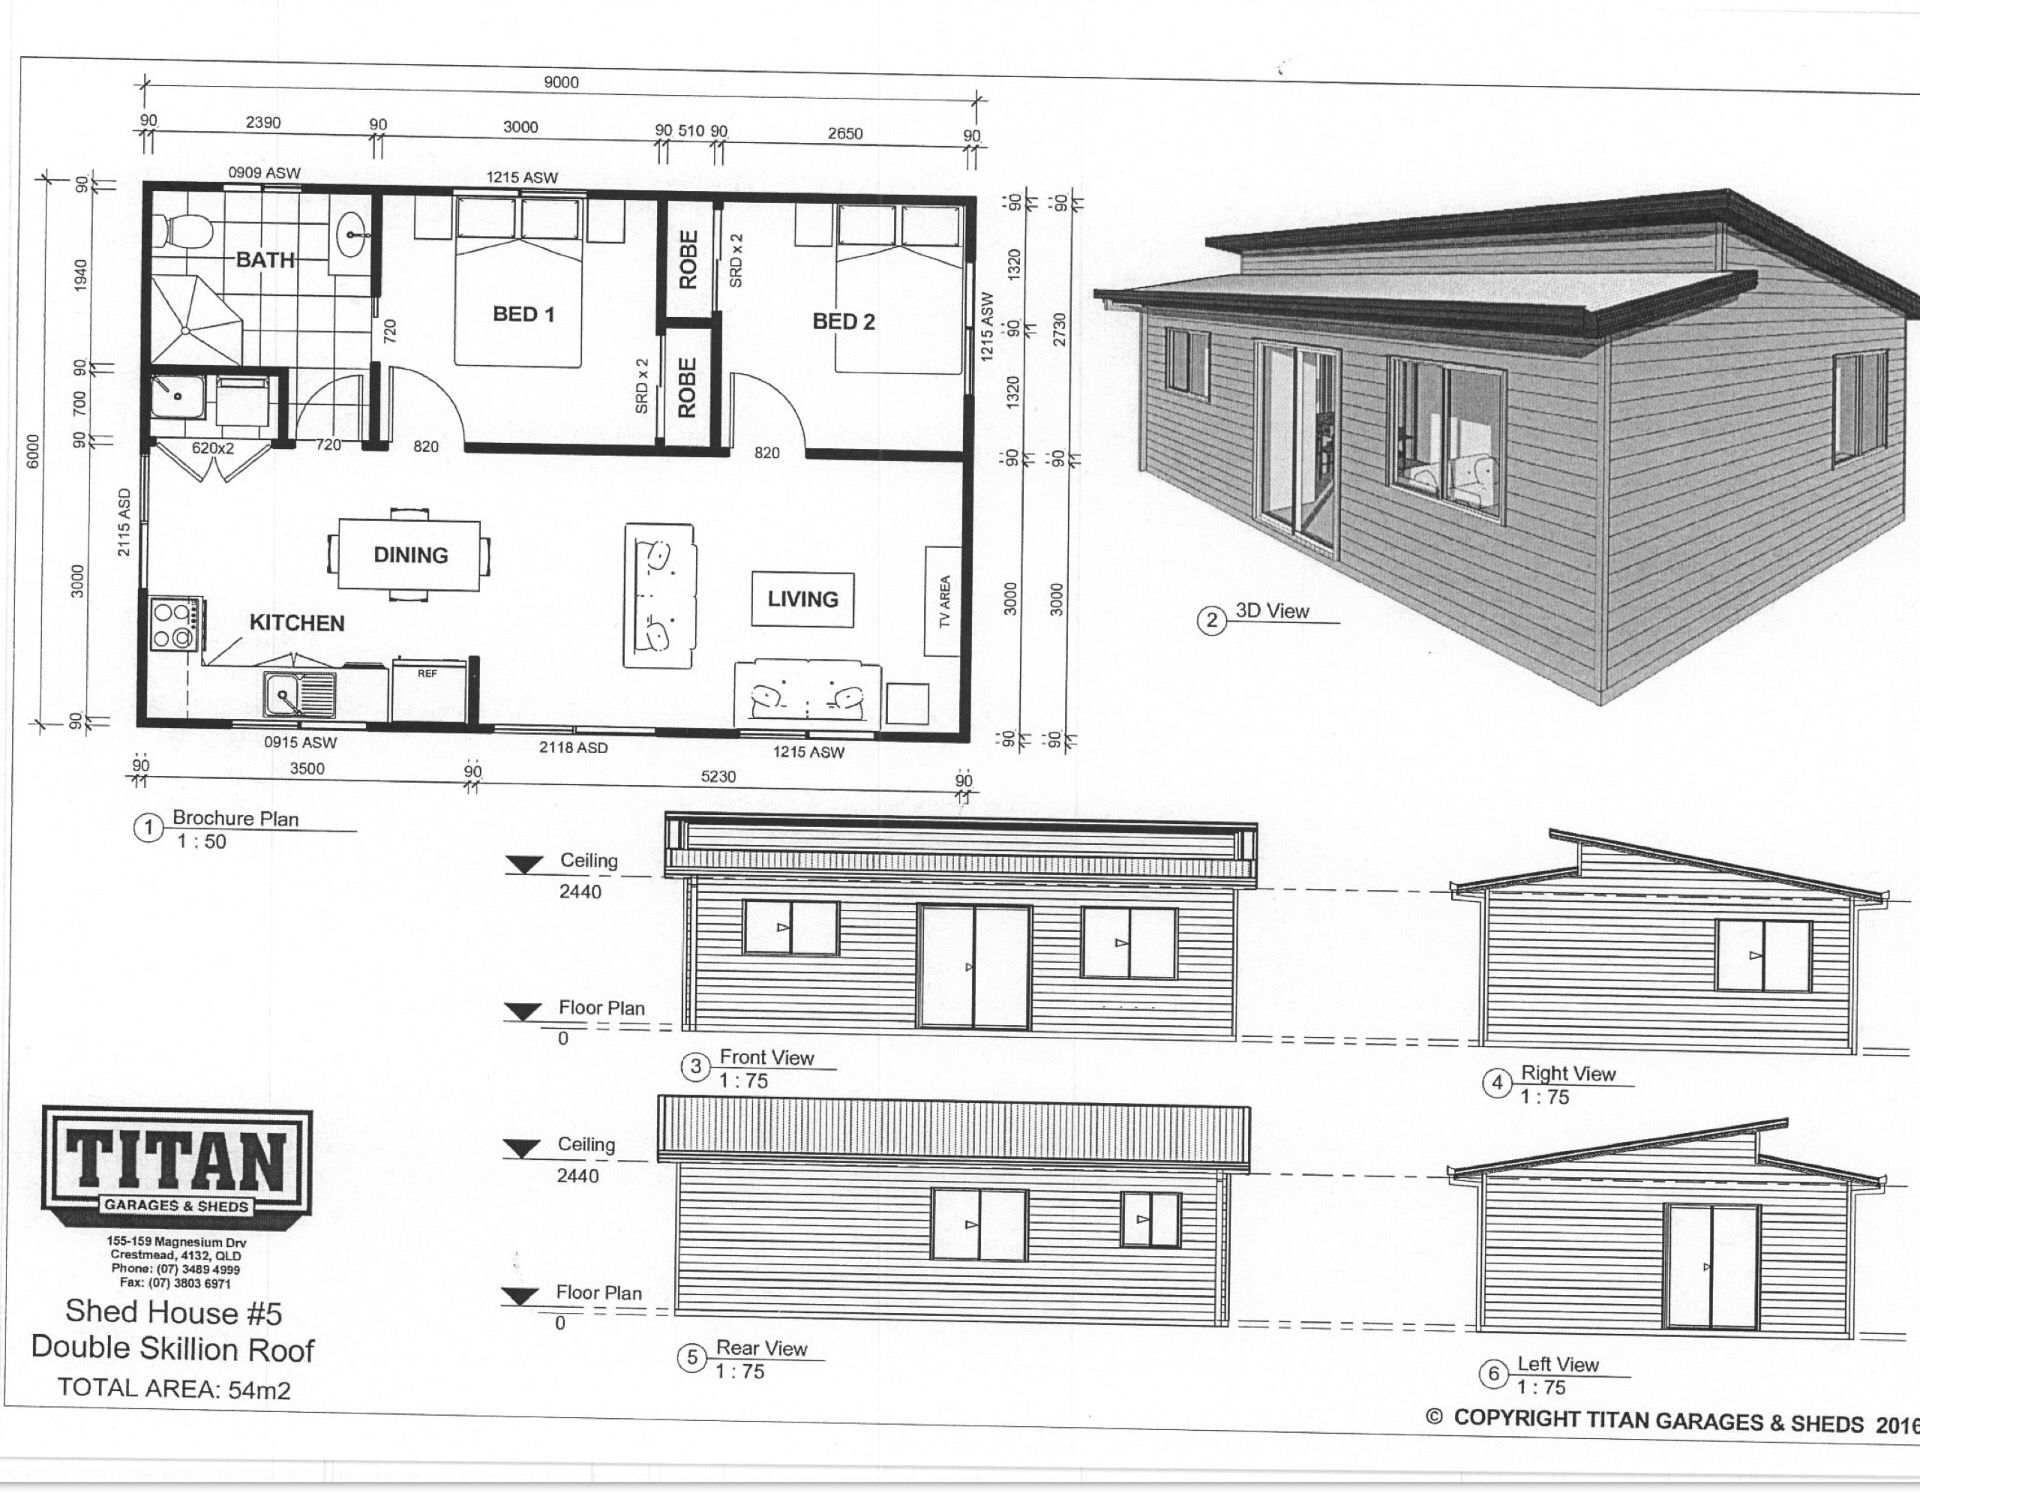 Titan Homes #5 Double Skillion Roof 54m2 www.titangaragesandsheds ...